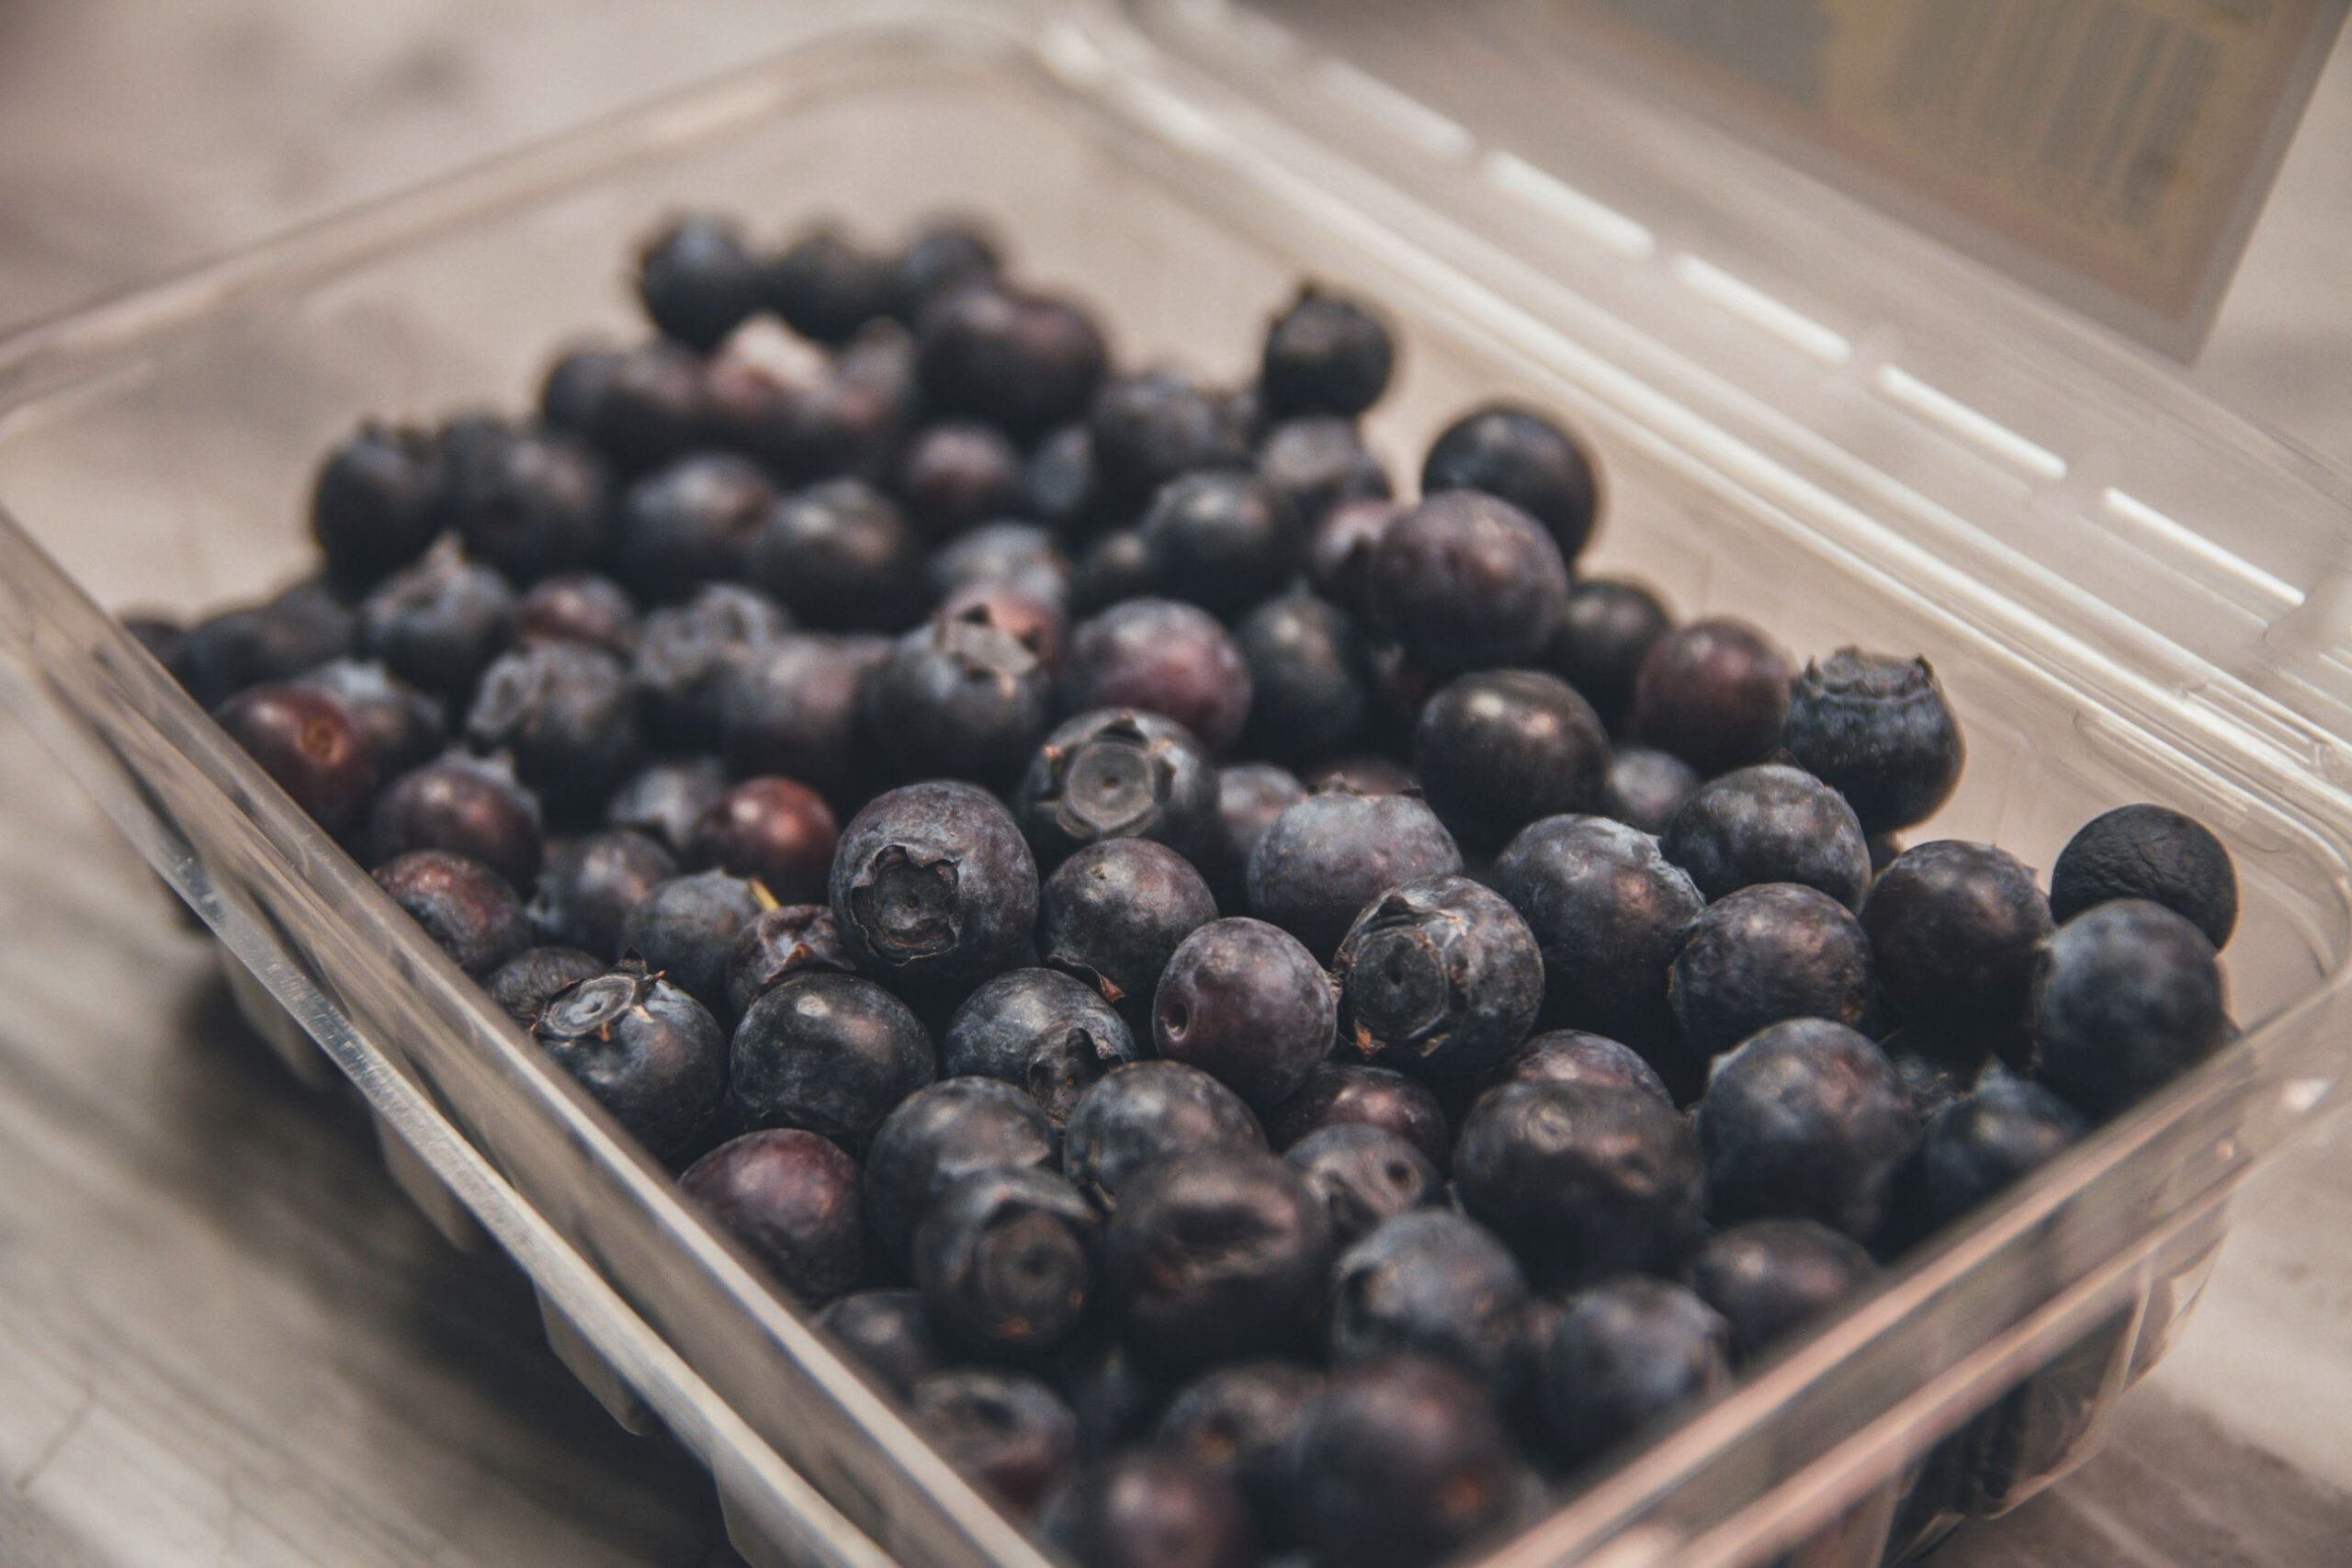 A container of blueberries is an example of foods to help with autoimmune diseases